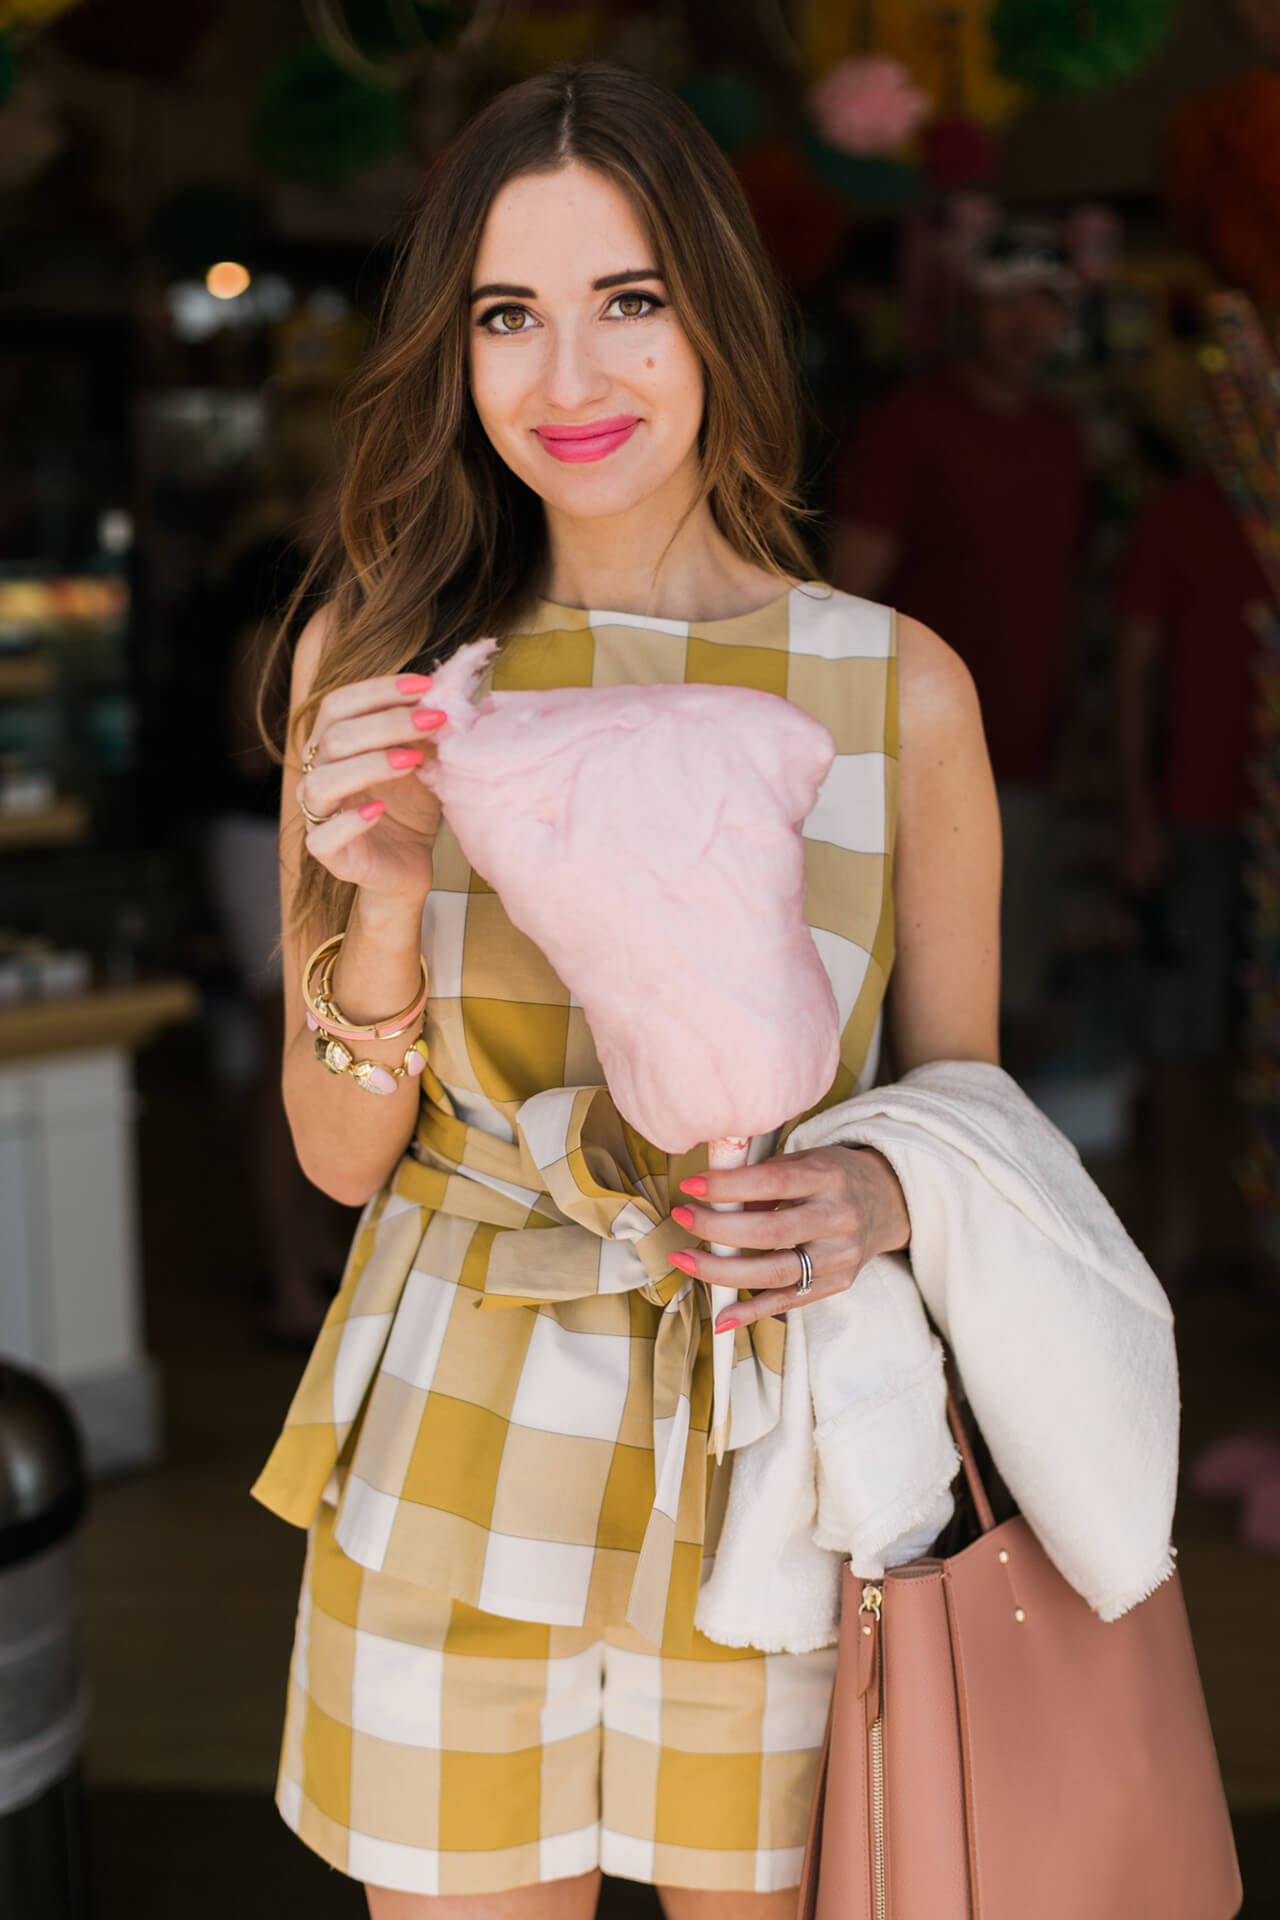 gingham two piece outfit with cotton candy